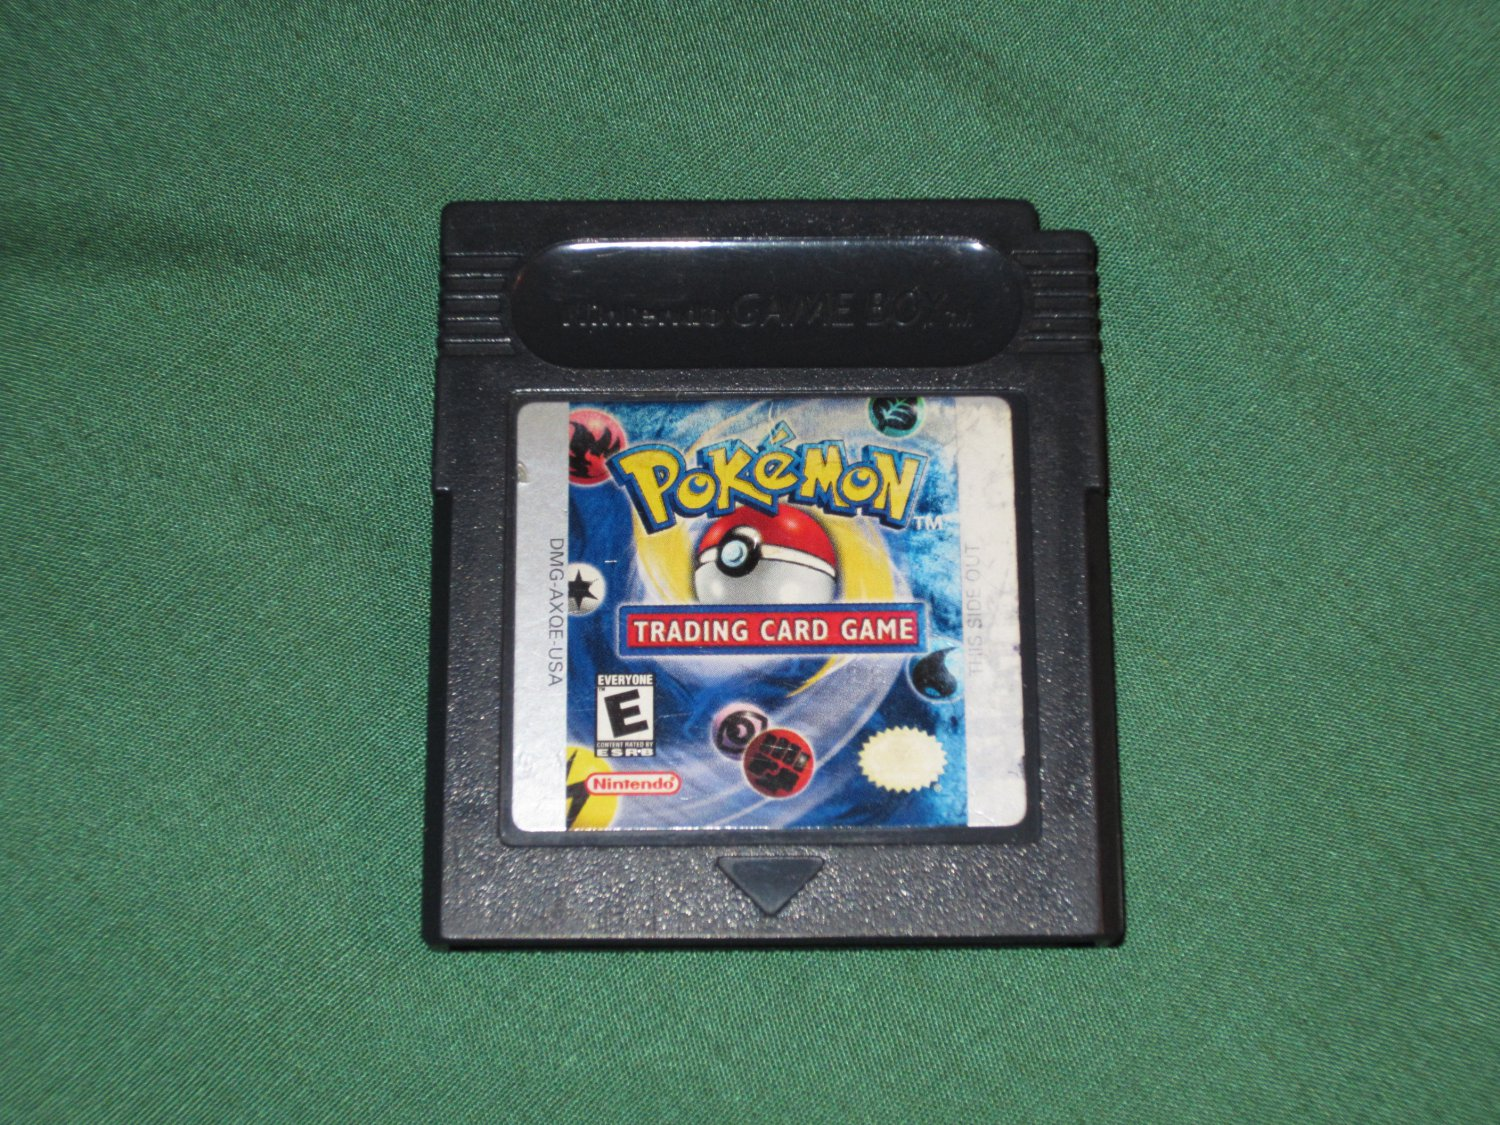 Pokemon Trading Card Game (Game Boy Color)